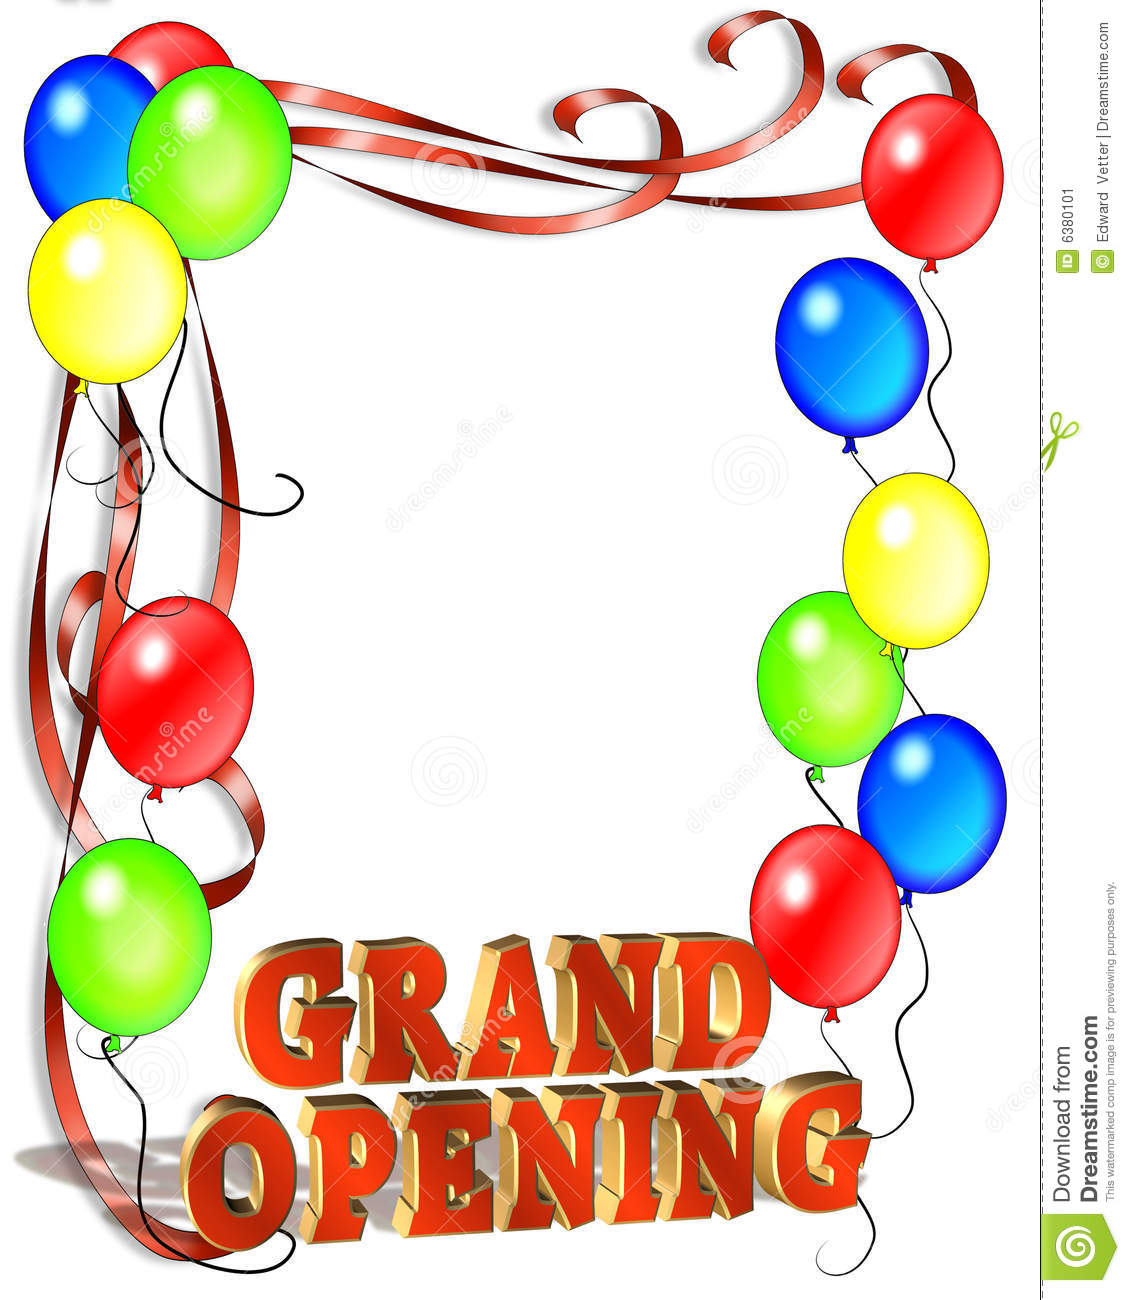 Free Grand Opening Template - Grand opening flyer template free